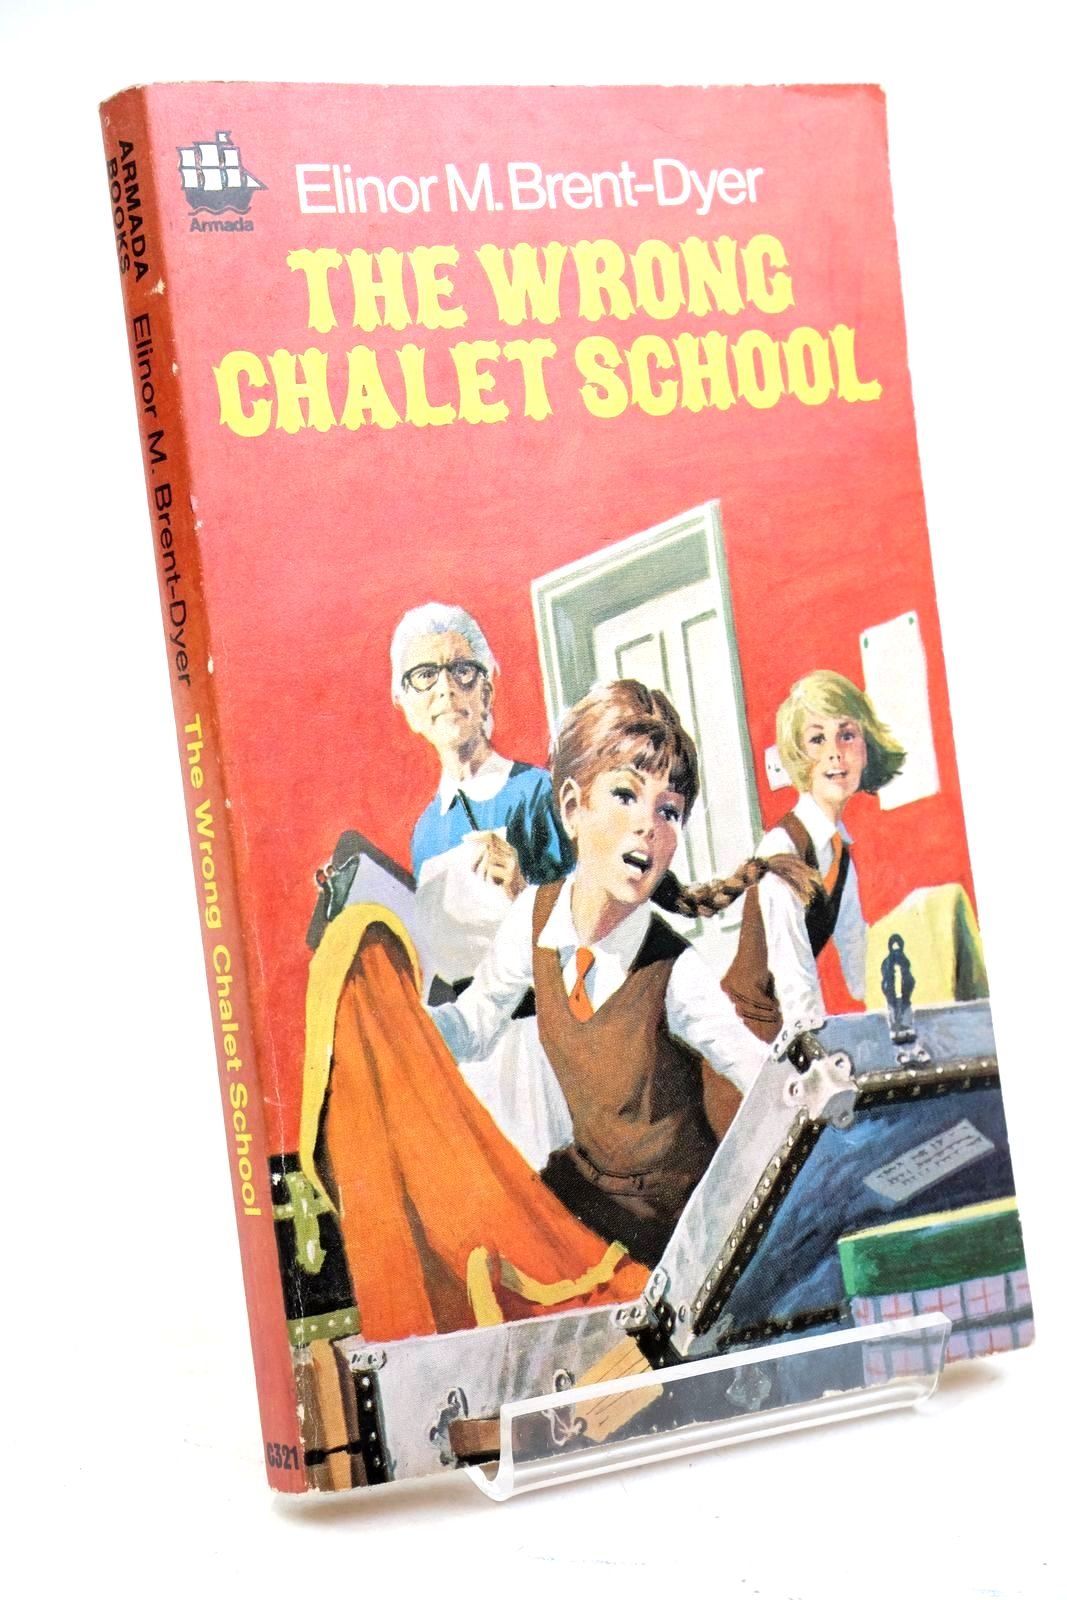 Photo of THE WRONG CHALET SCHOOL written by Brent-Dyer, Elinor M. published by Armada (STOCK CODE: 1320822)  for sale by Stella & Rose's Books